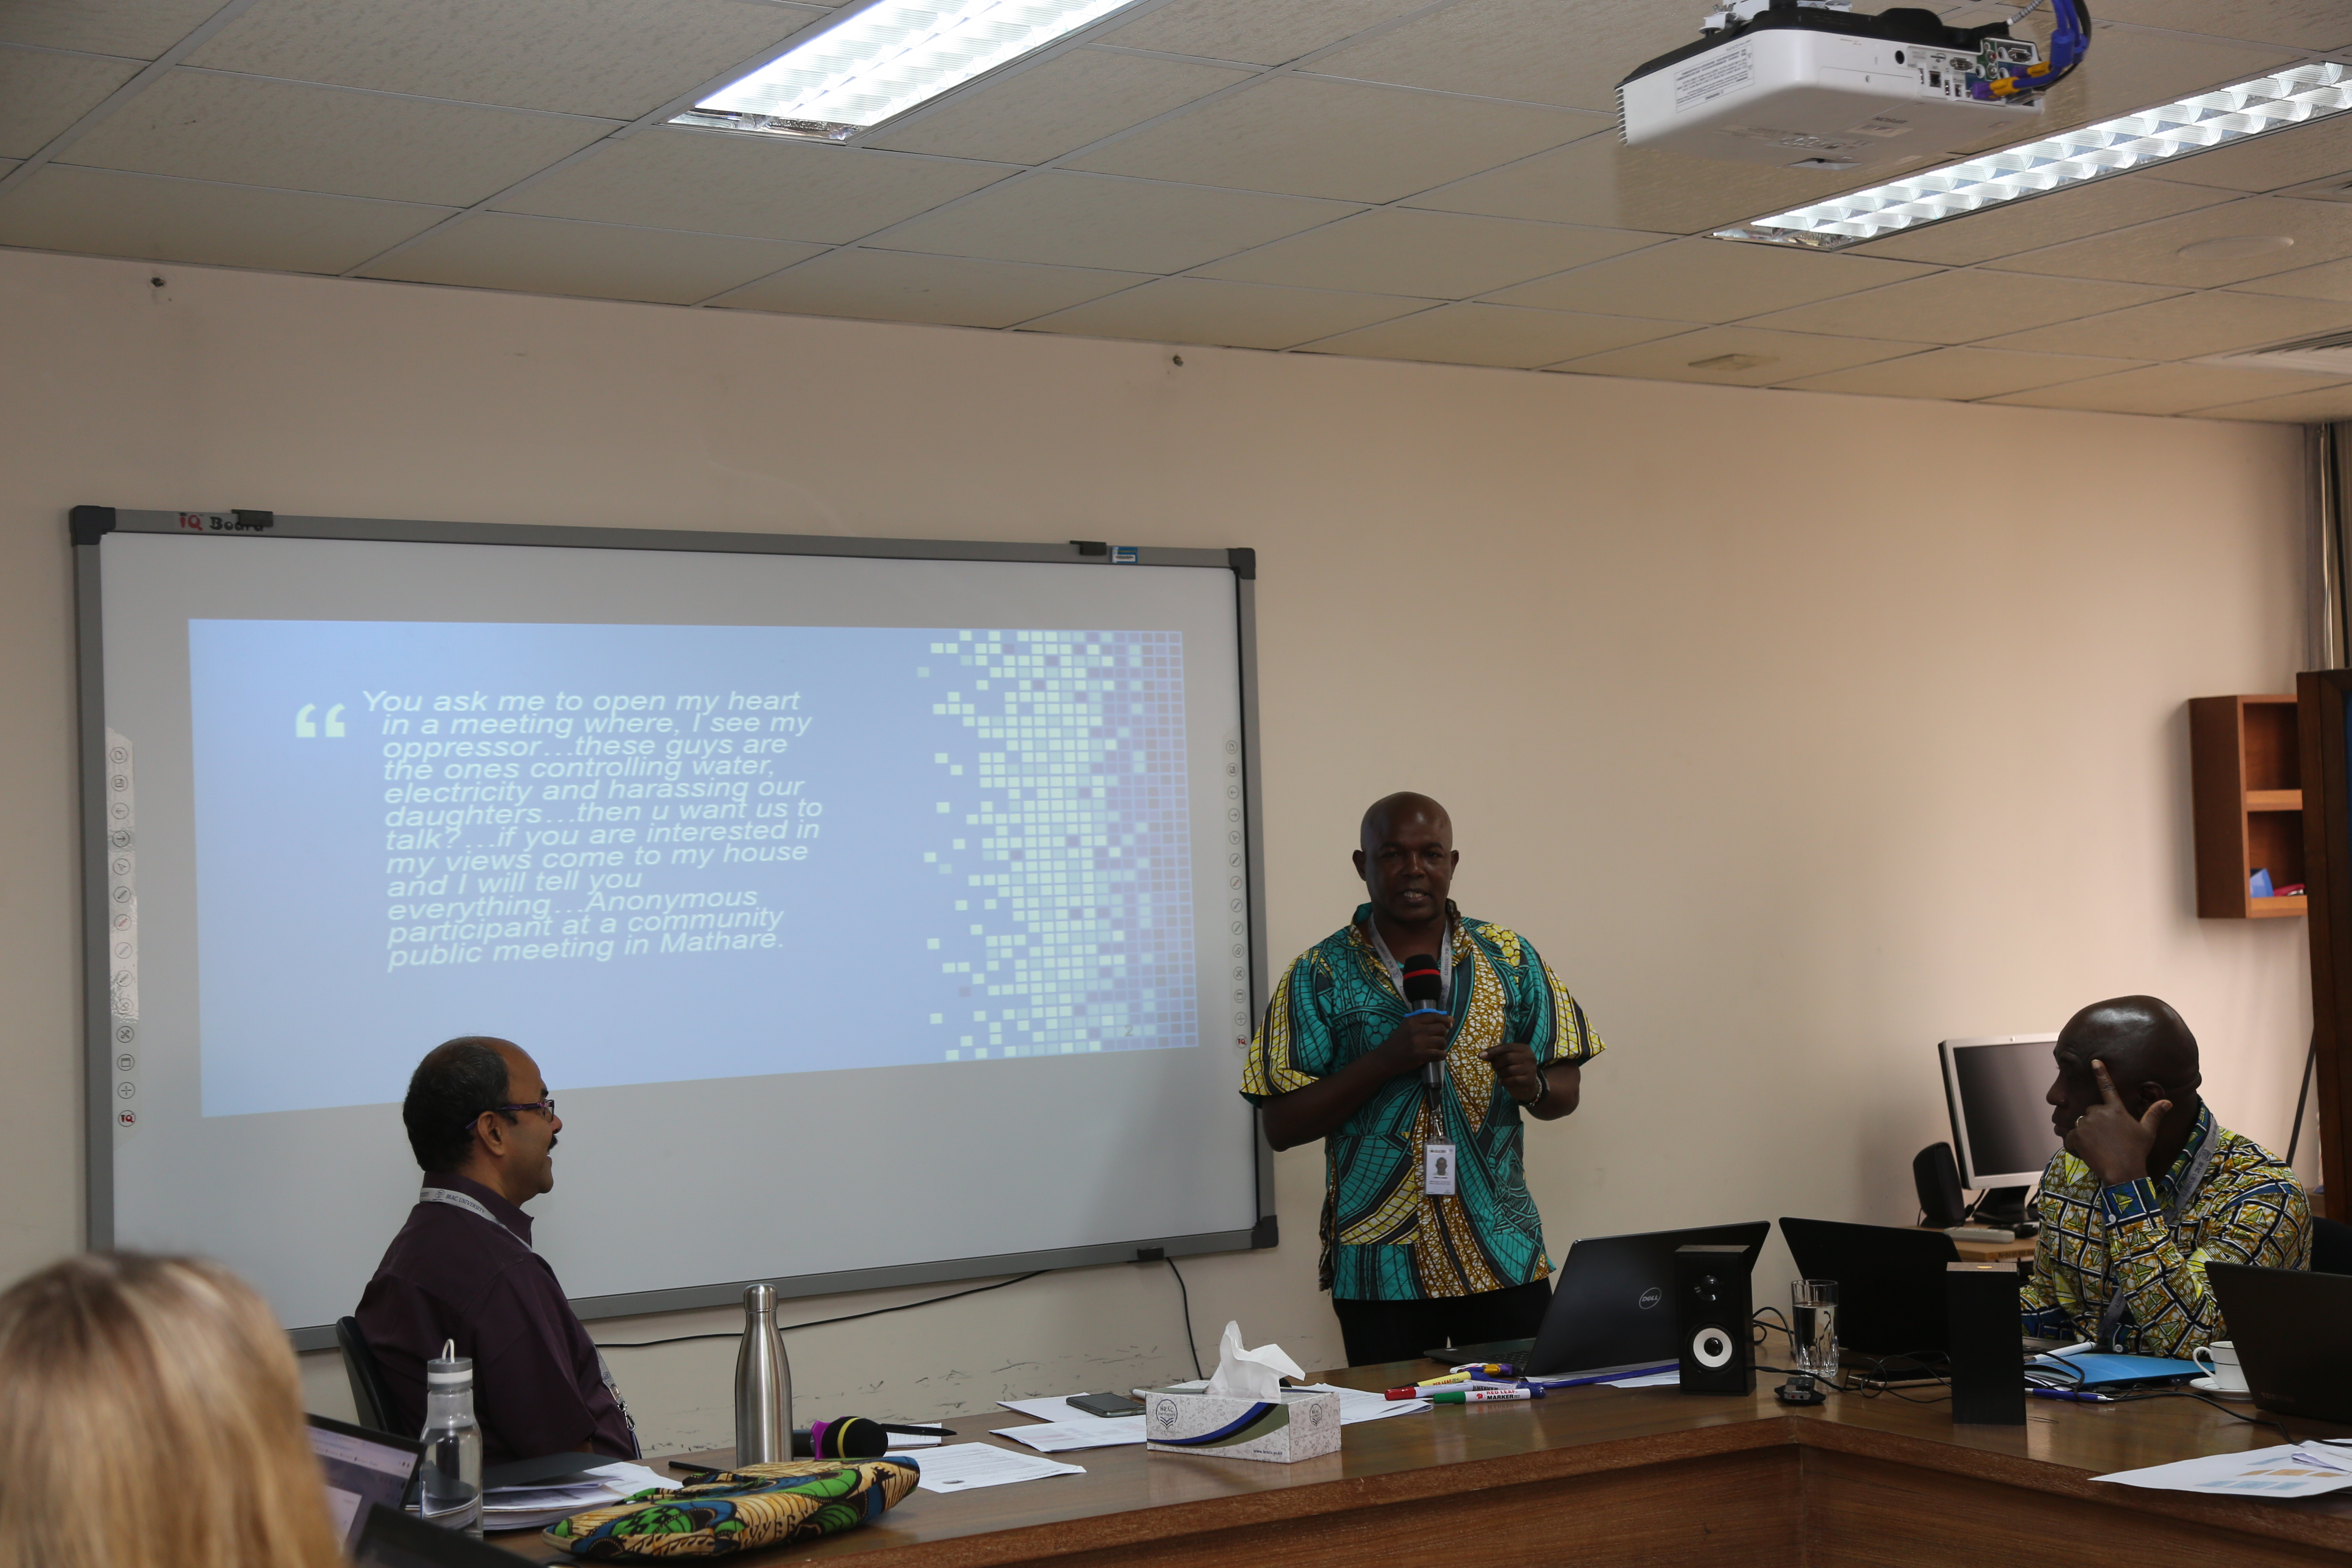 Kimani presenting in front of a slide with the quote from the blog on it